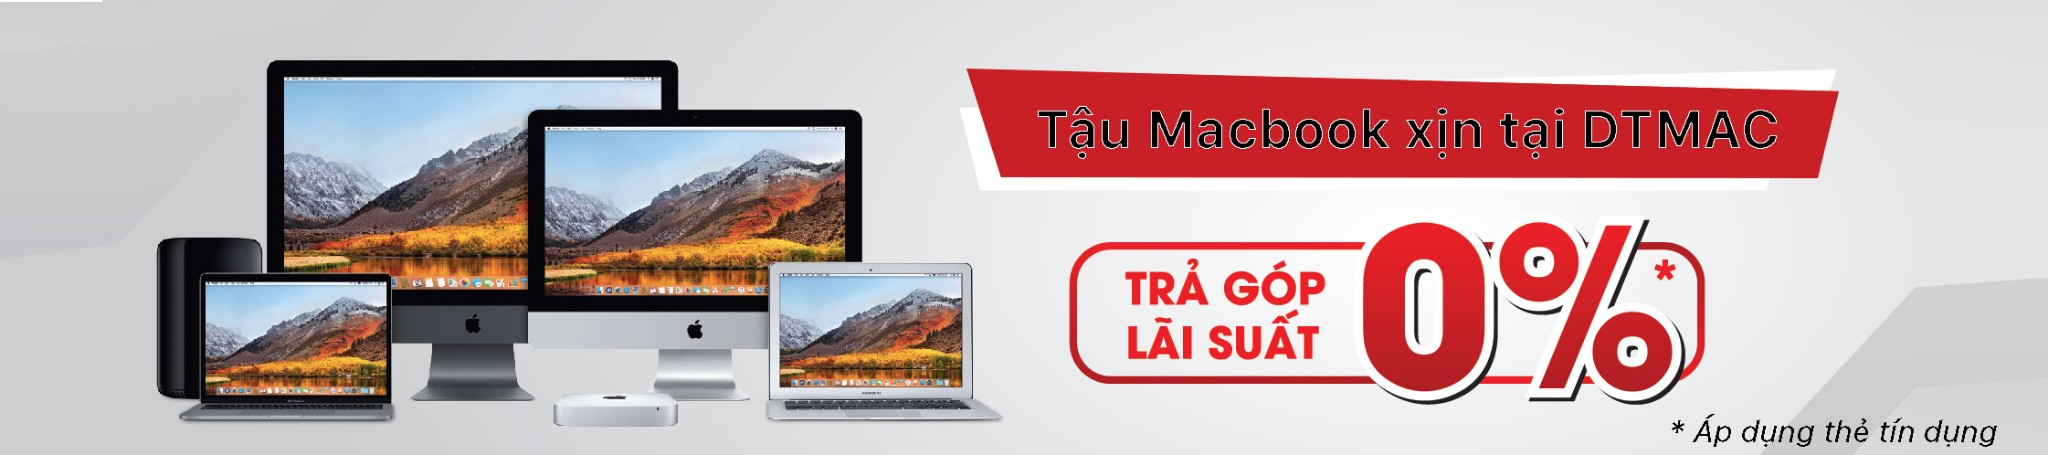 Sạc Macbook